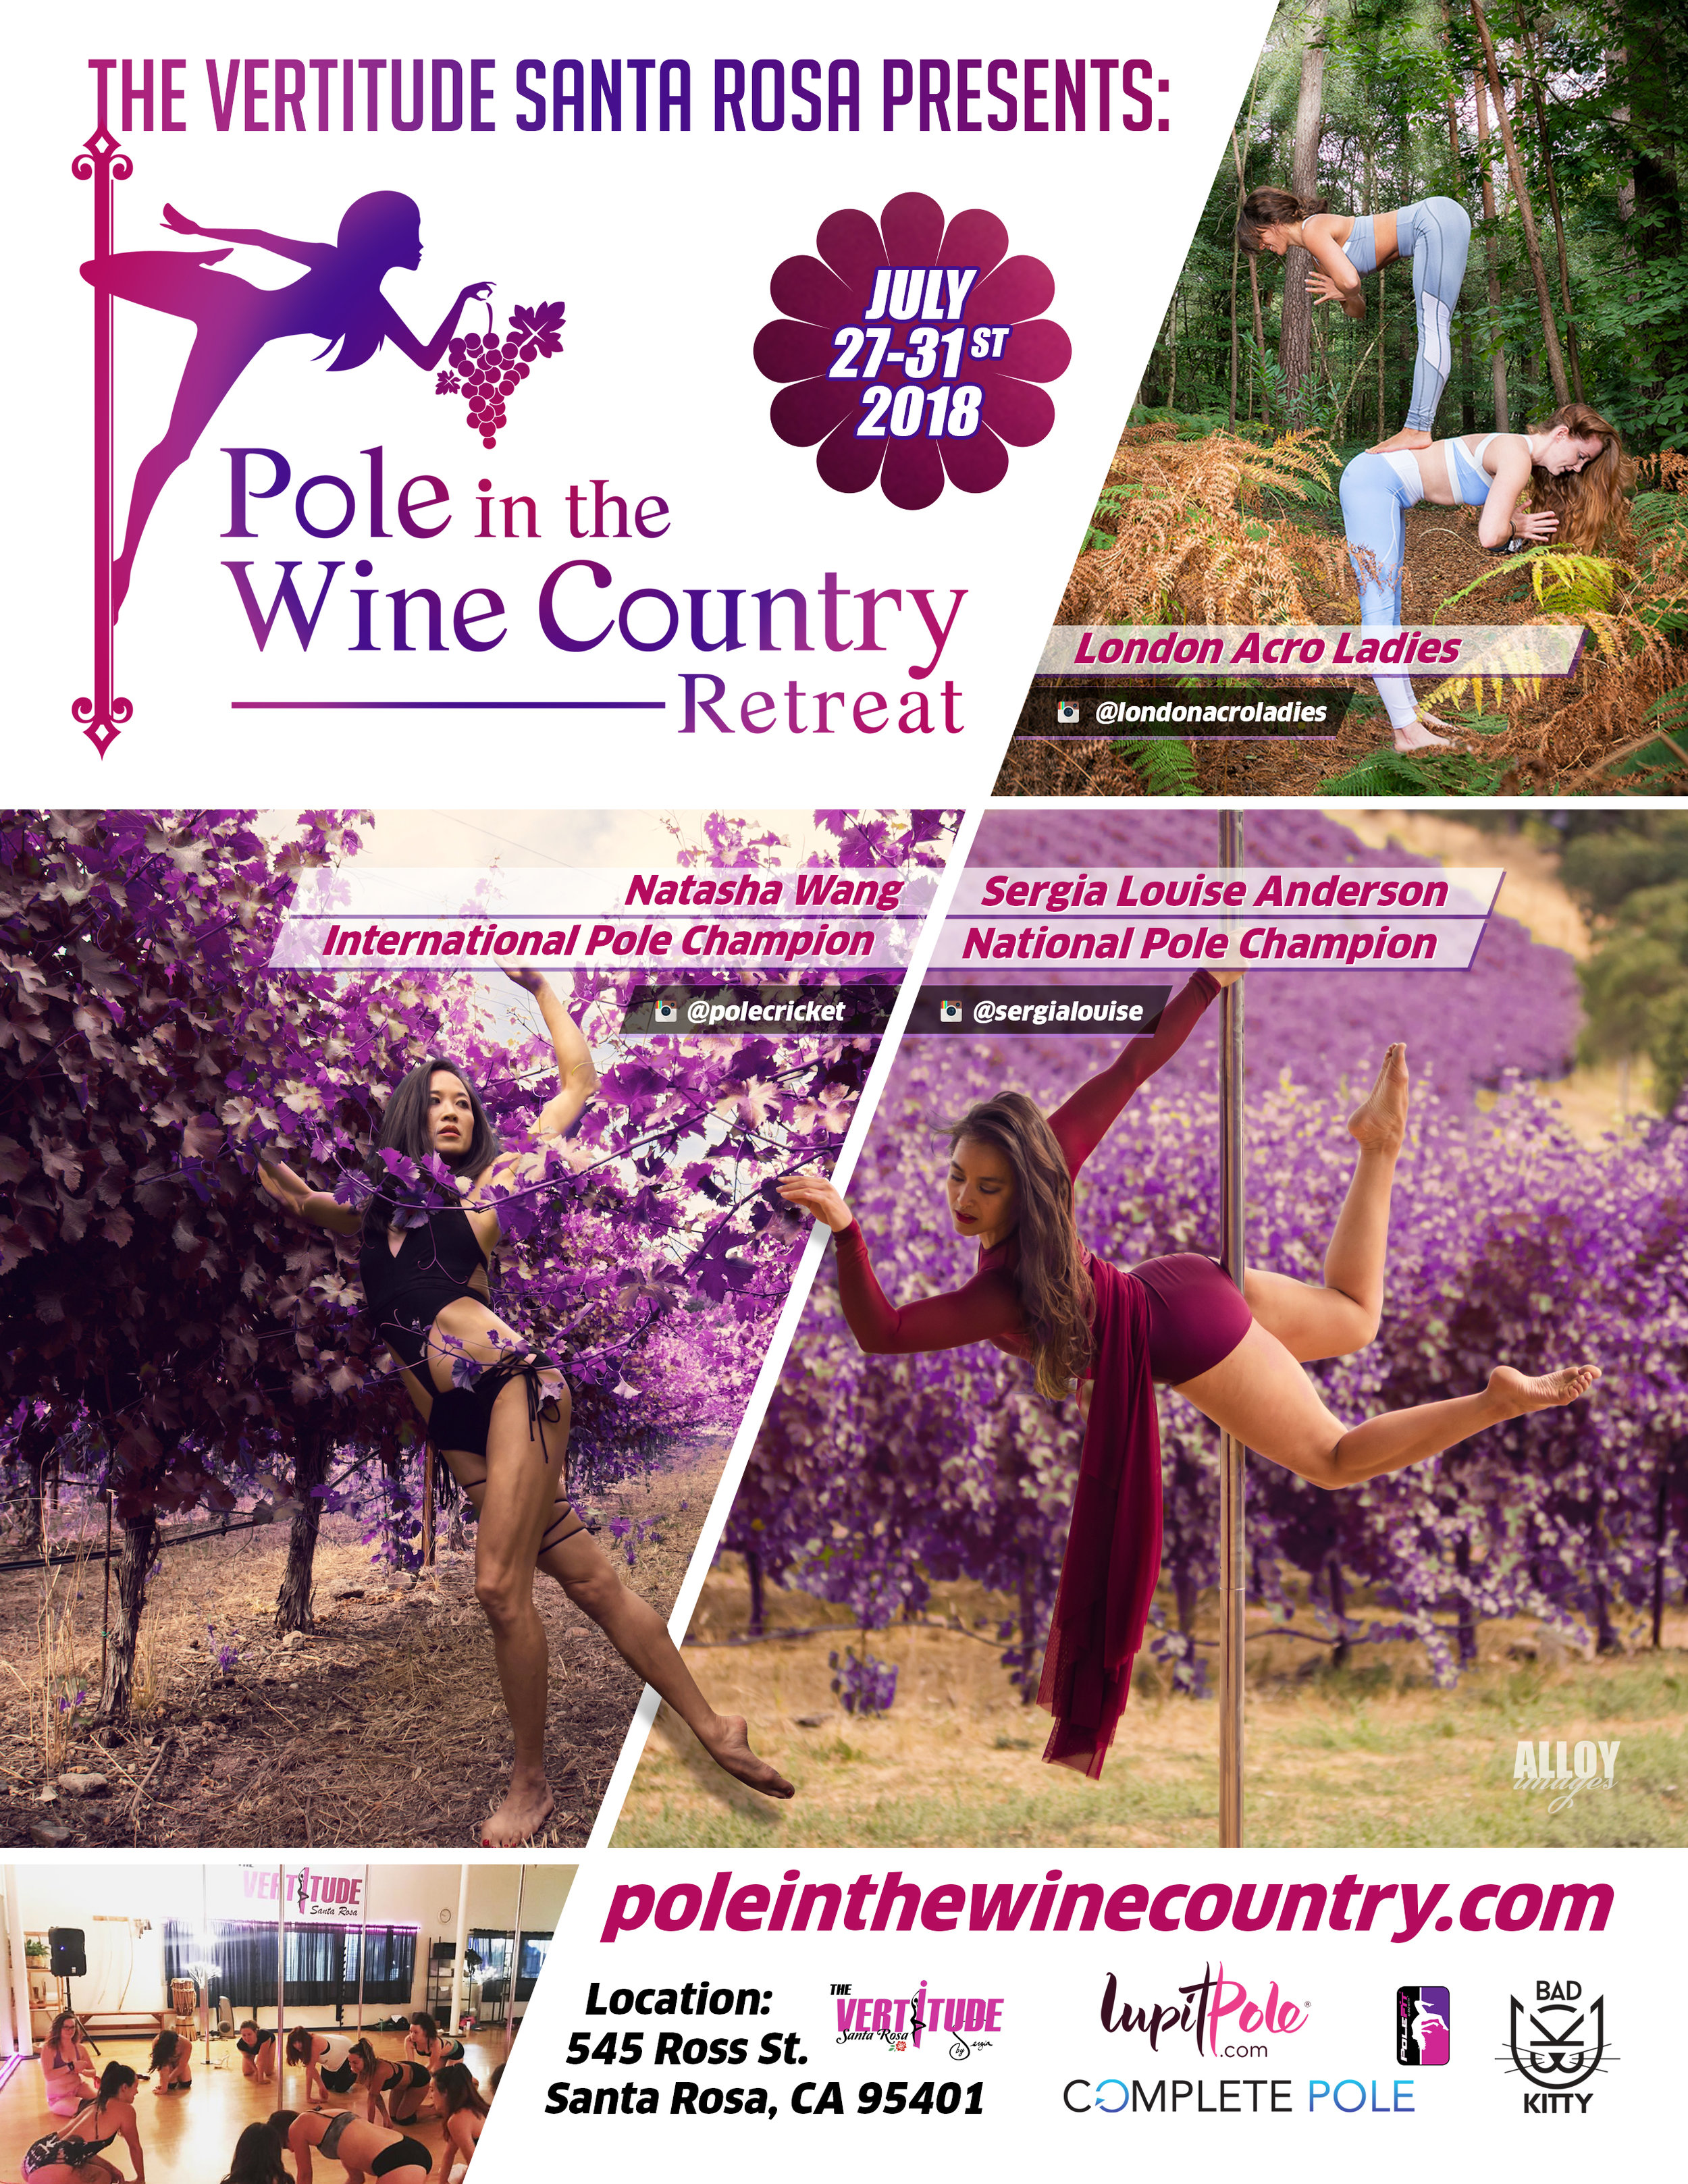 pole-wine-retreat-2018-big-print-flyerWEBPROOFSMALLERFILE.jpg